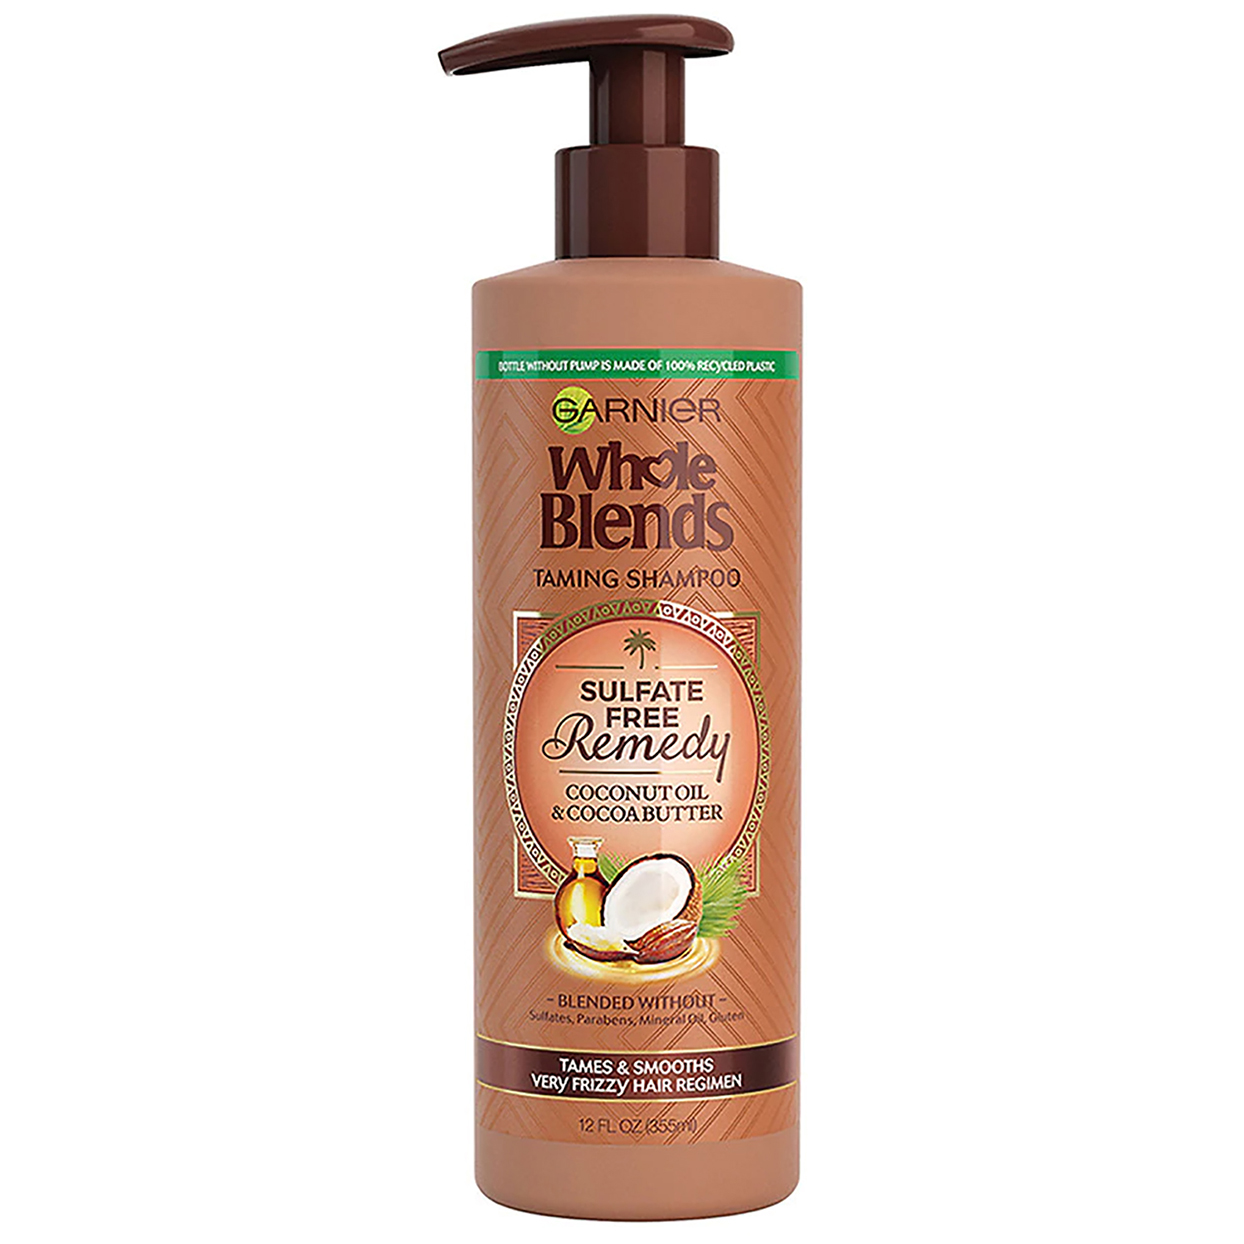 Garnier Whole Blends Sulfate Free Remedy Coconut Oil Shampoo